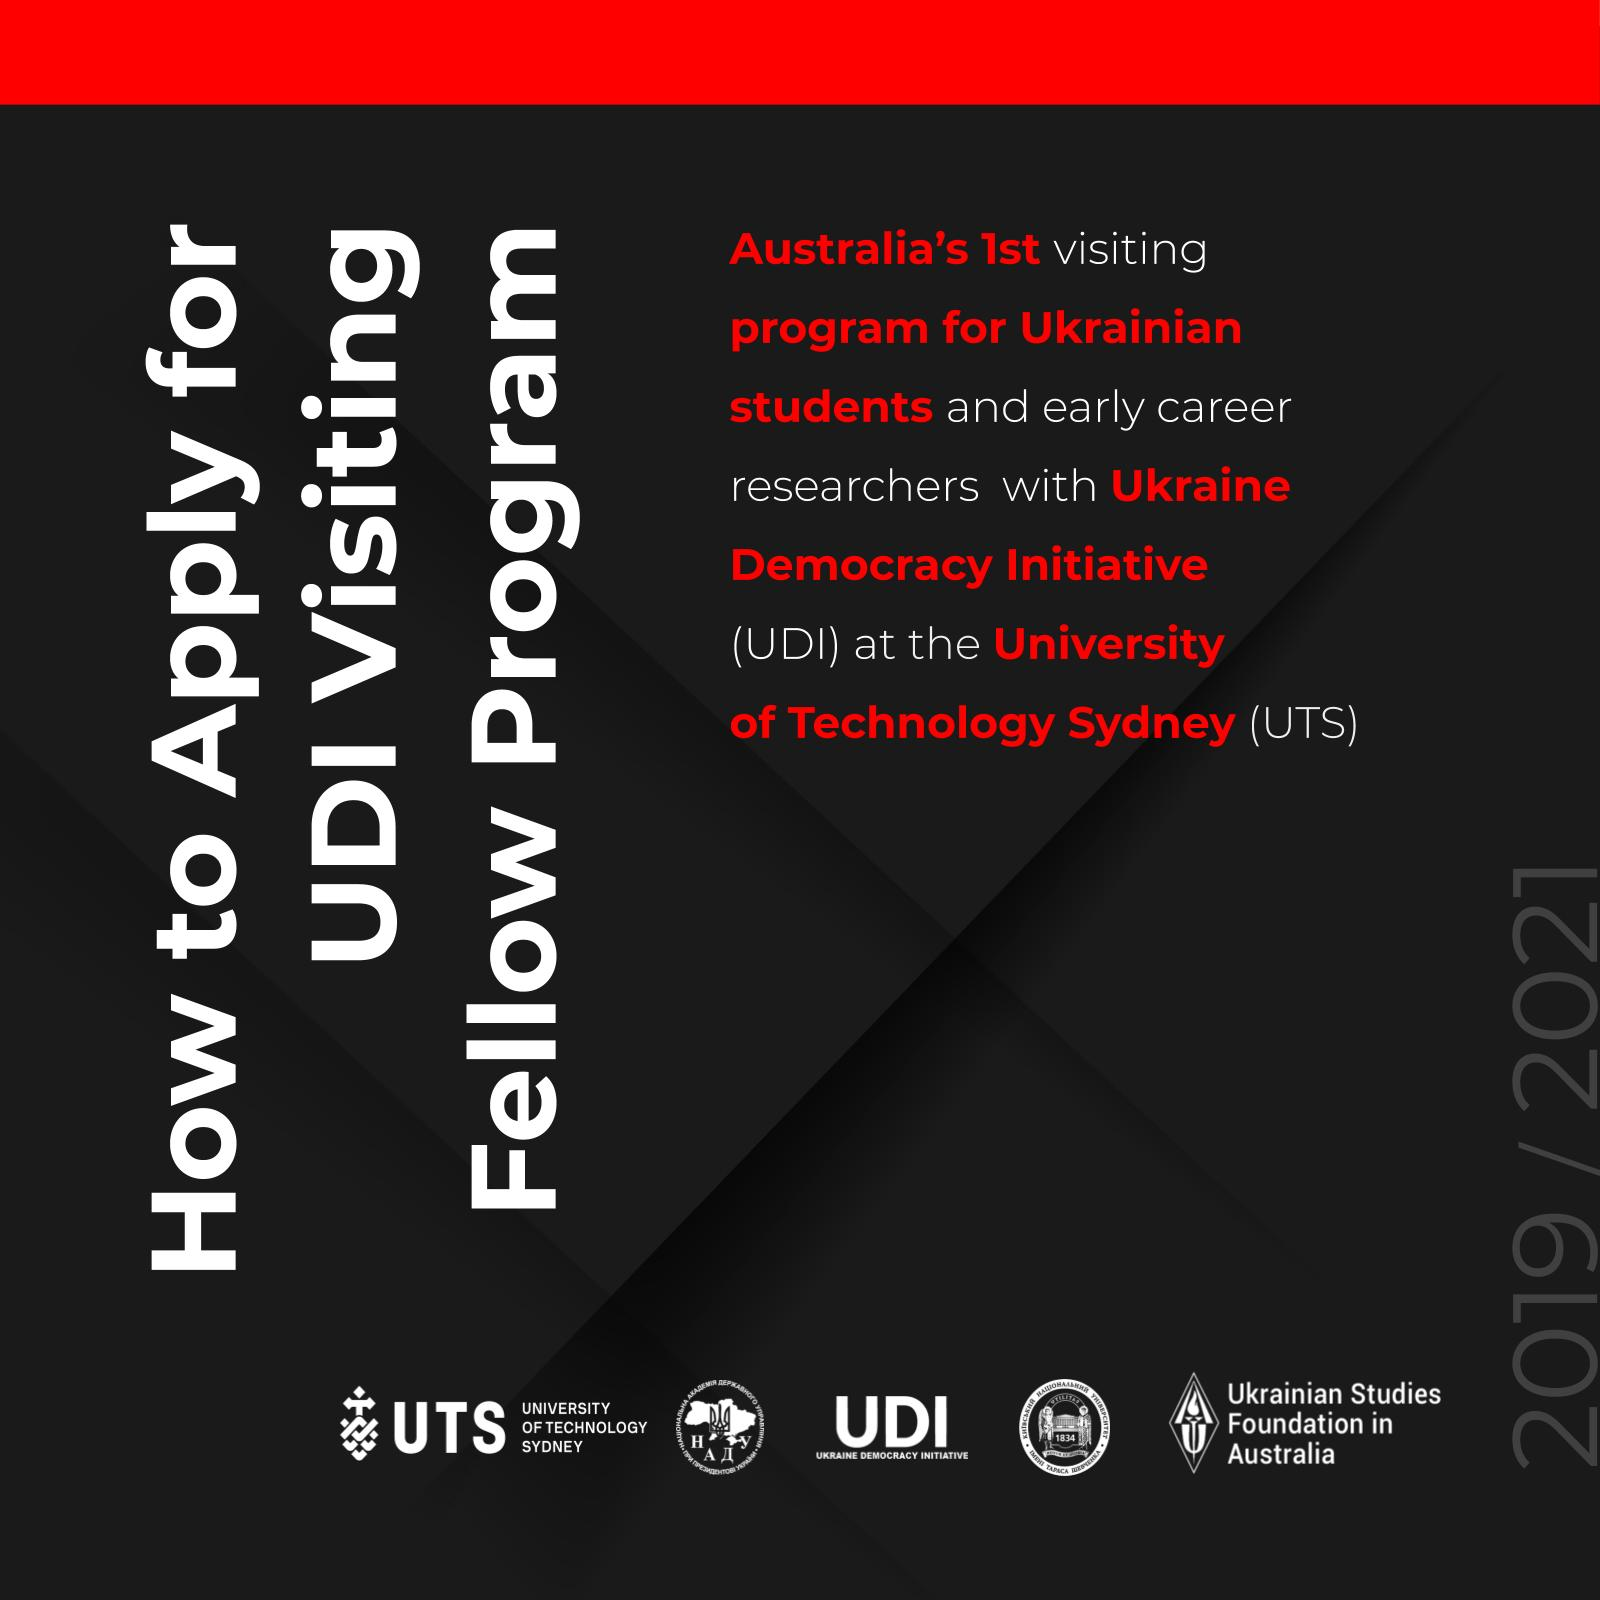 How to Apply for UDI Visiting Fellow Program at UTS